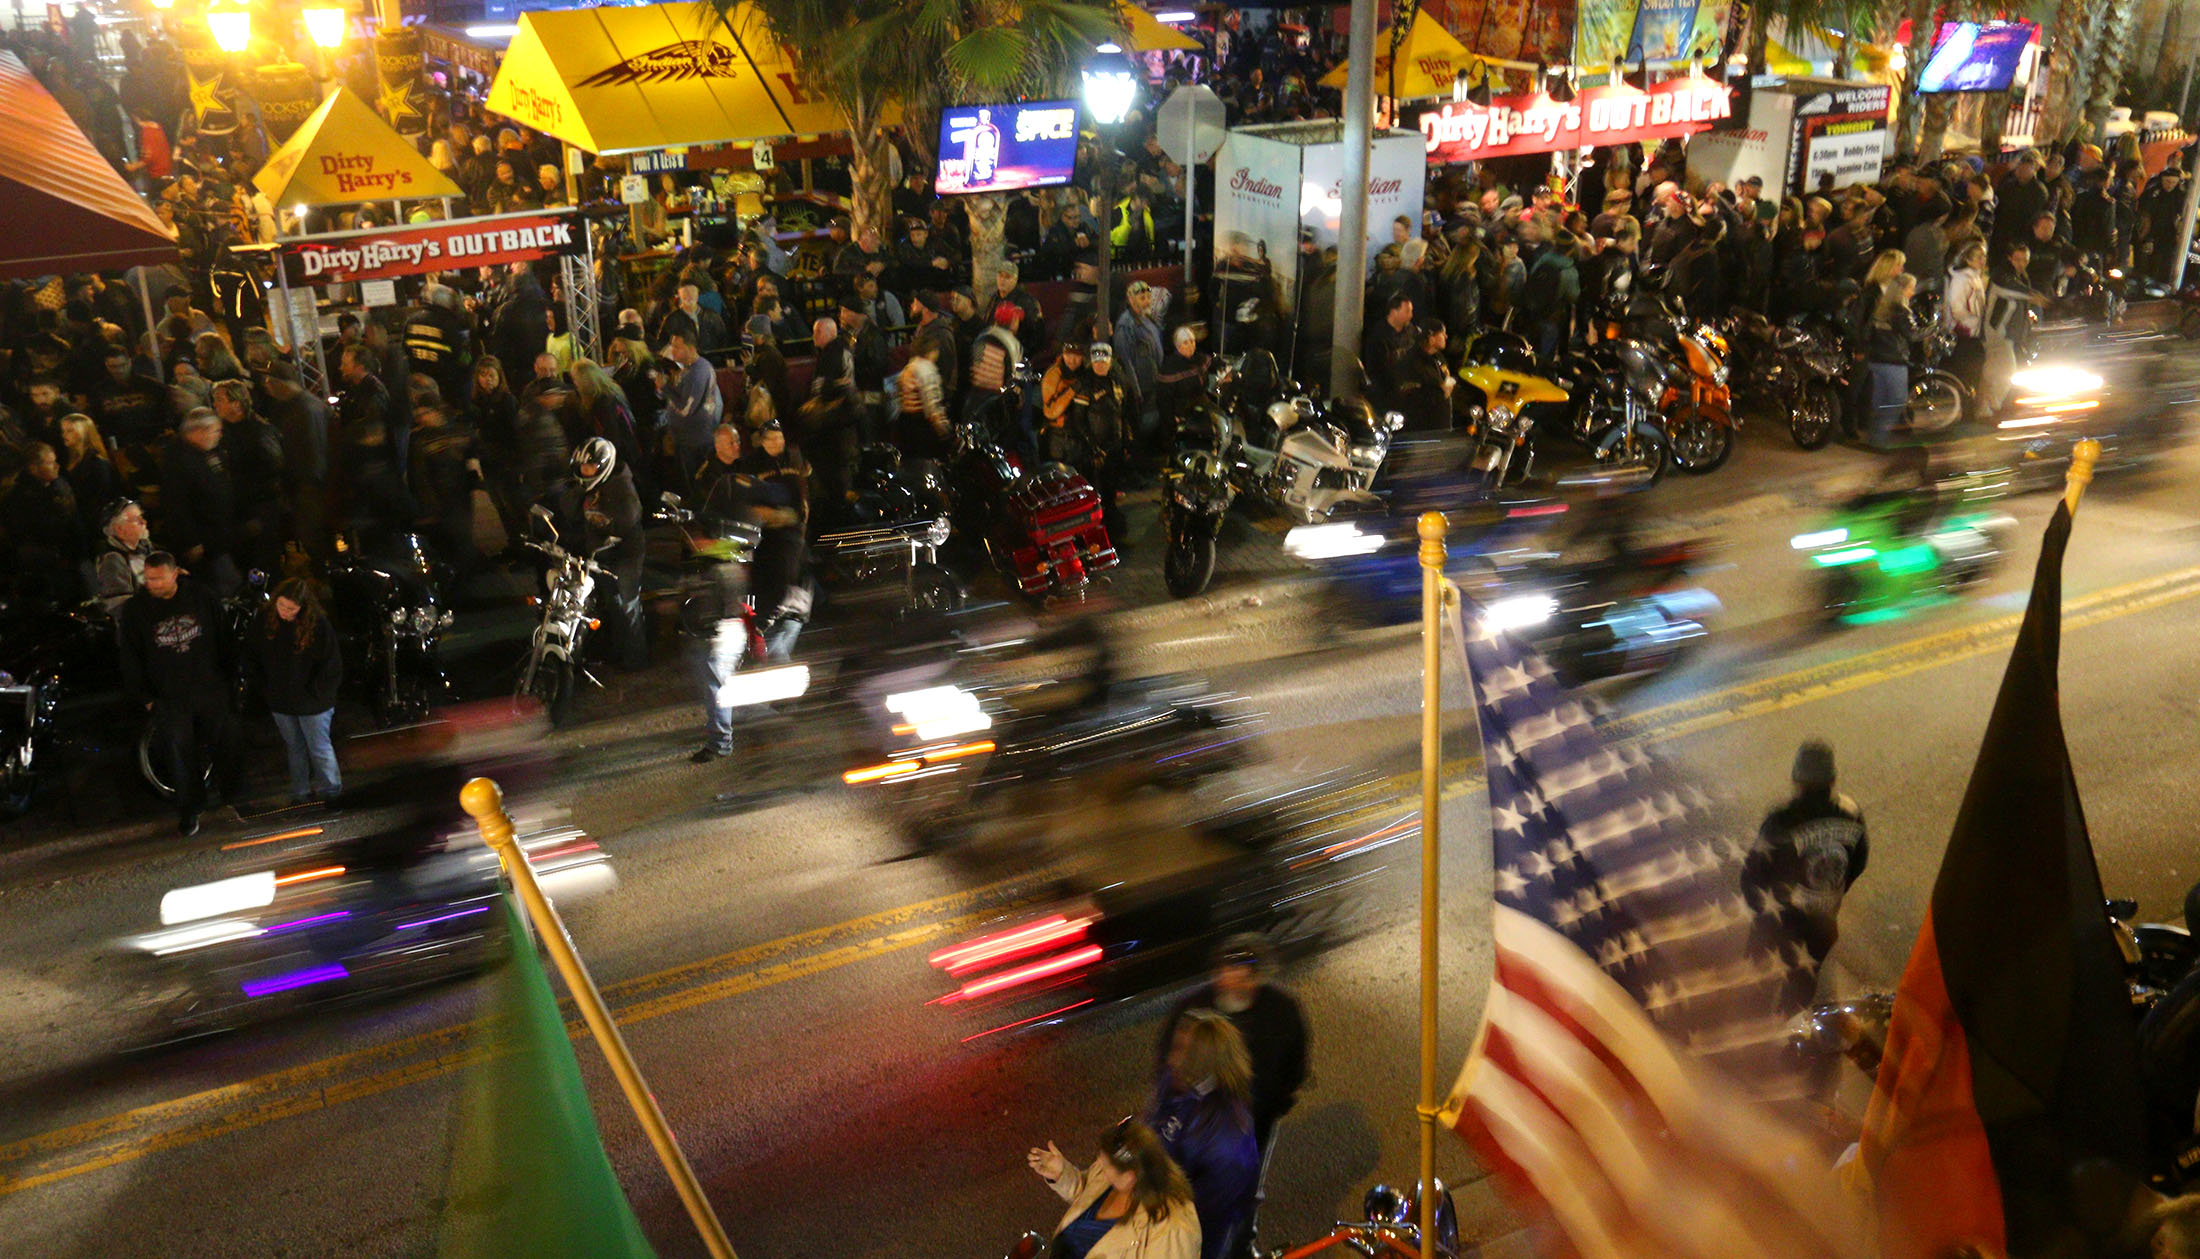 News-Journal/JIM TILLER   Night scenes from Bike Week 2015 on Main Street in Daytona Beach Saturday, March 9, 2015